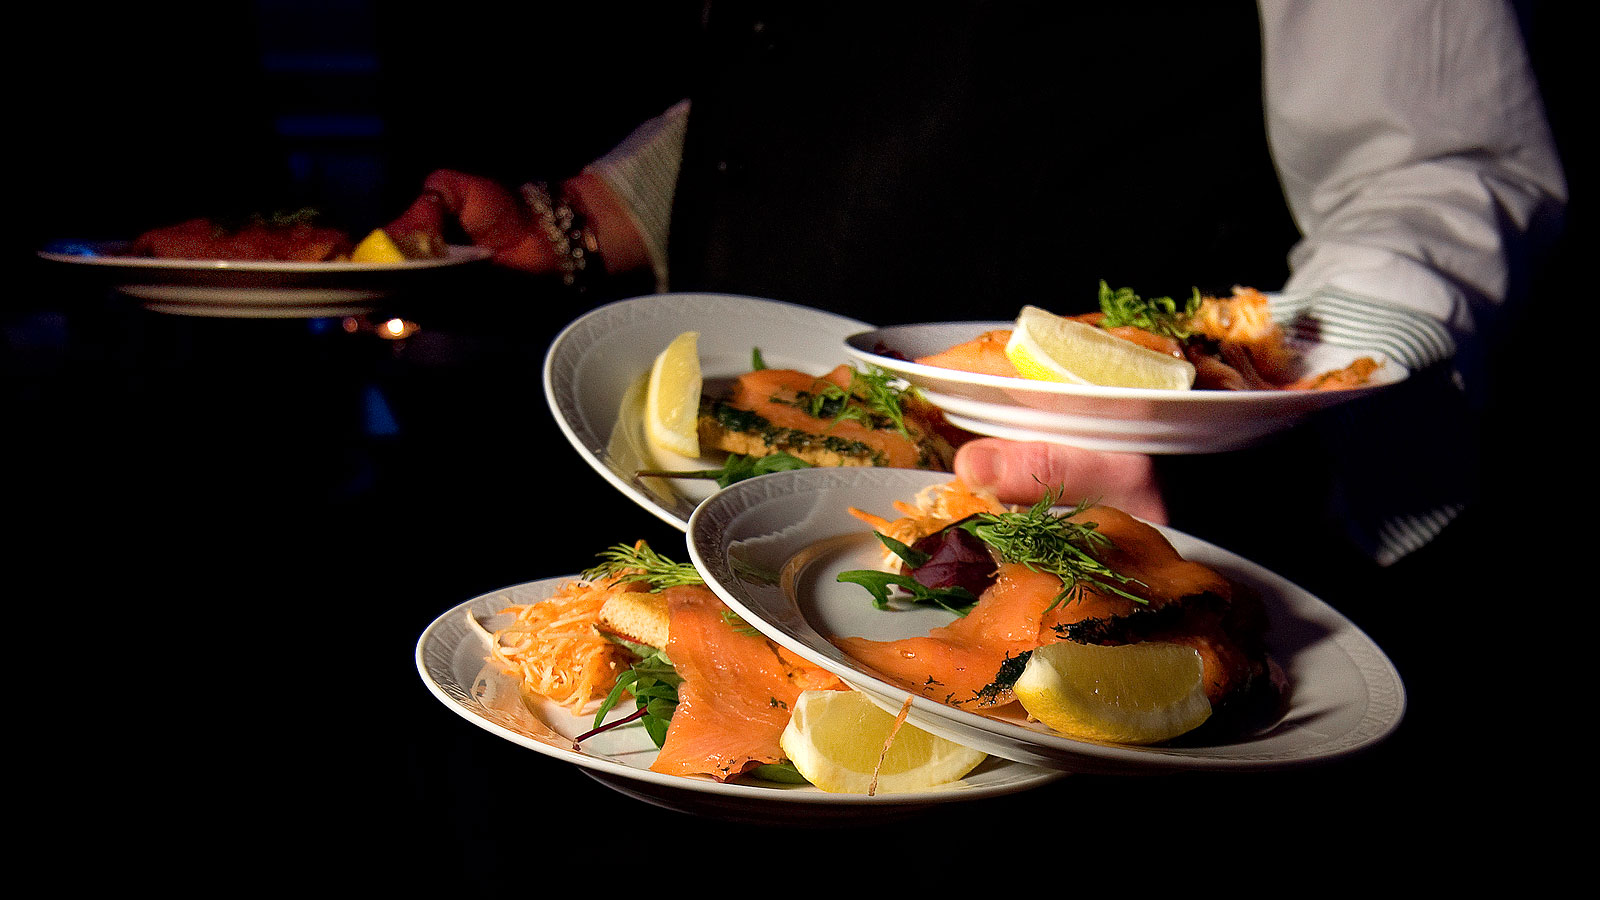 Folkets hus, Bacchus - The menu offers traditional Swedish food and has vegetarian options. To every meal there's a salad buffet, drink and tea orcoffee included.Only open Friday lunch during the event.Contact:+46520 – 42 25 21restaurang@trollhattan.fh.sehttps://www.trollhattan.fh.se/events/category/matochdryck/